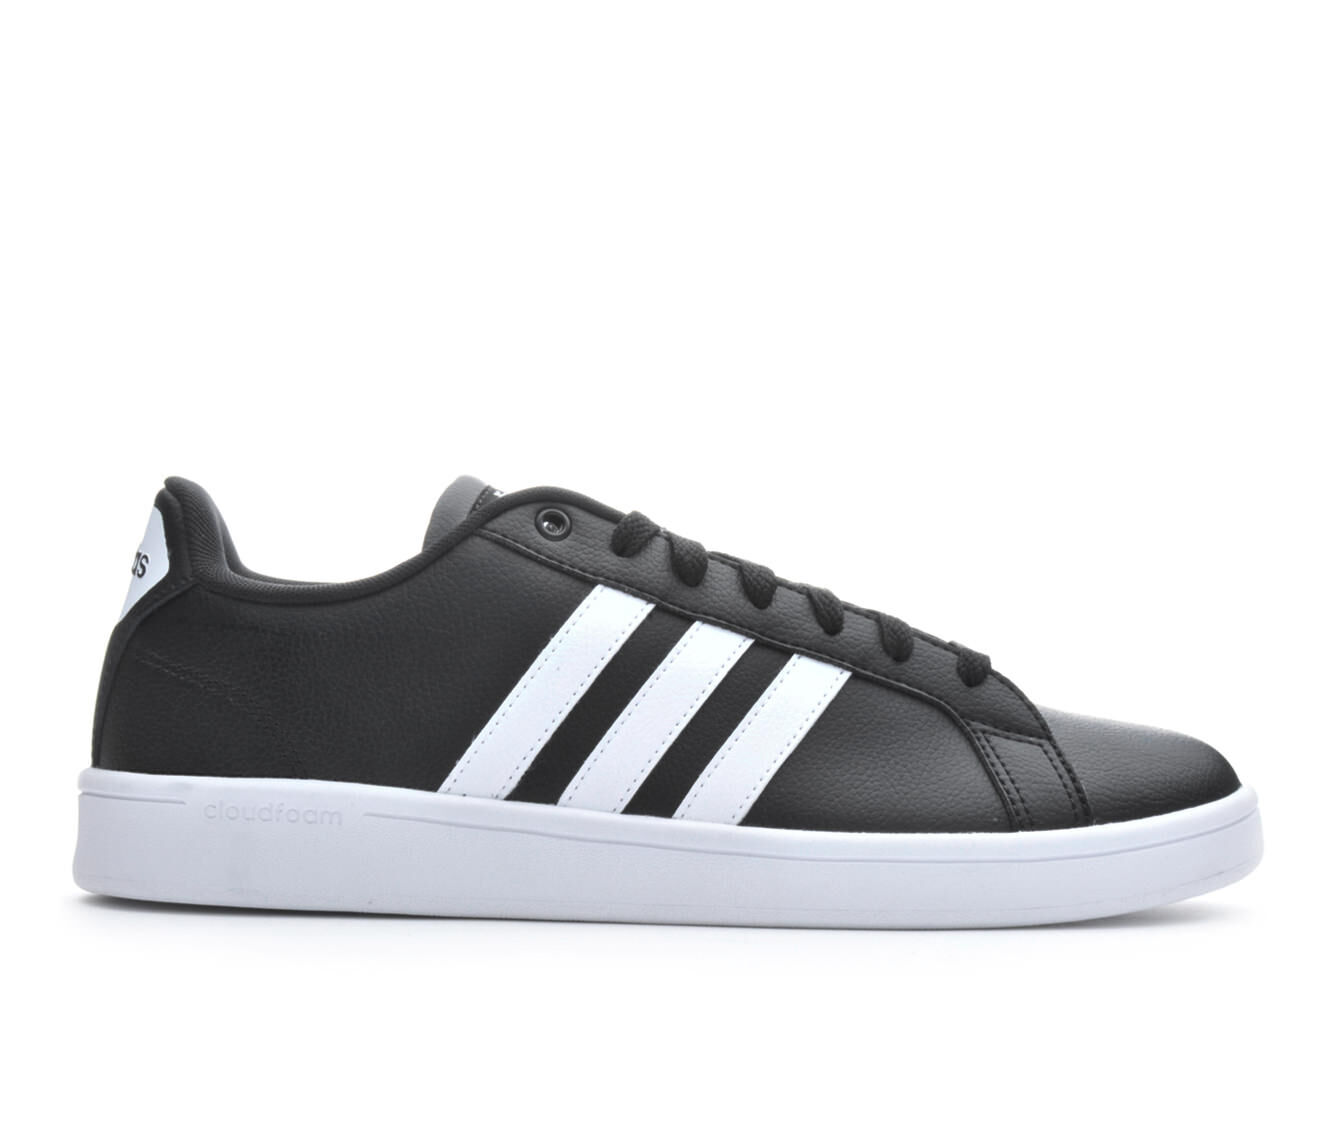 adidas cloudfoam advantage black